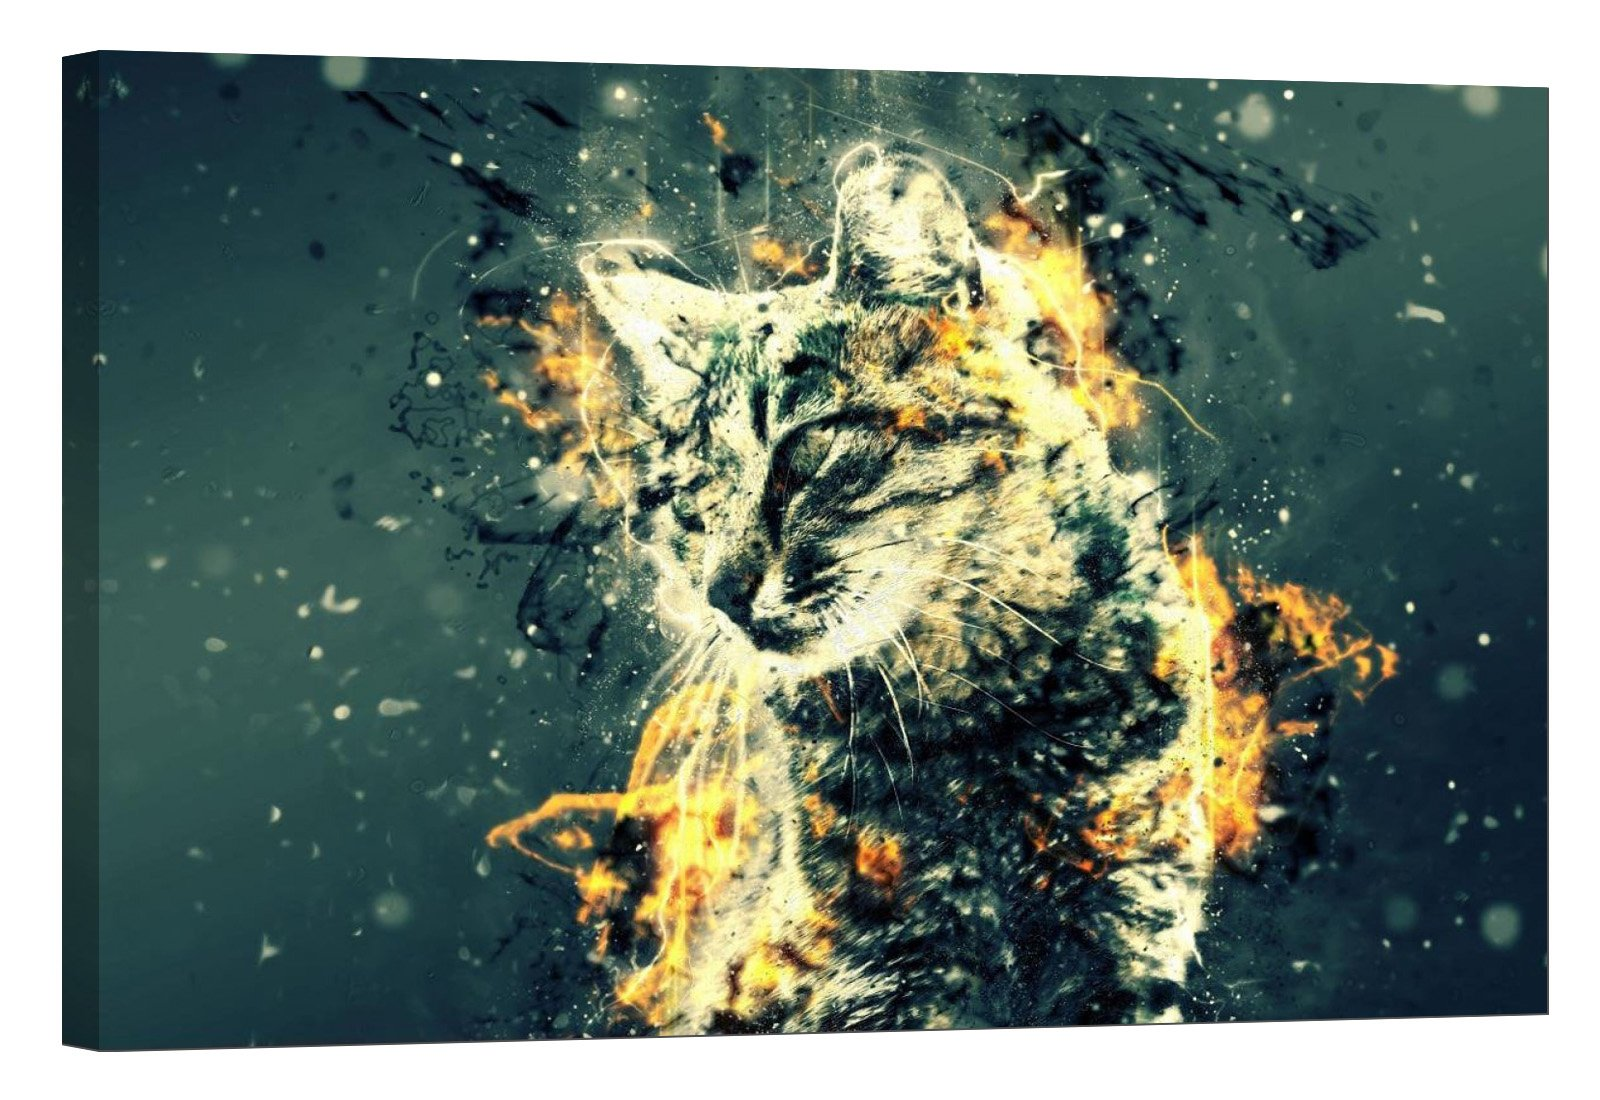 LightFairy Glow in The Dark Canvas Painting - Stretched and Framed Giclee Wall Art Print - Cat On Fire - Master Bedroom Living Room Decor - 6 Hours Glow - 36 x 24 inch